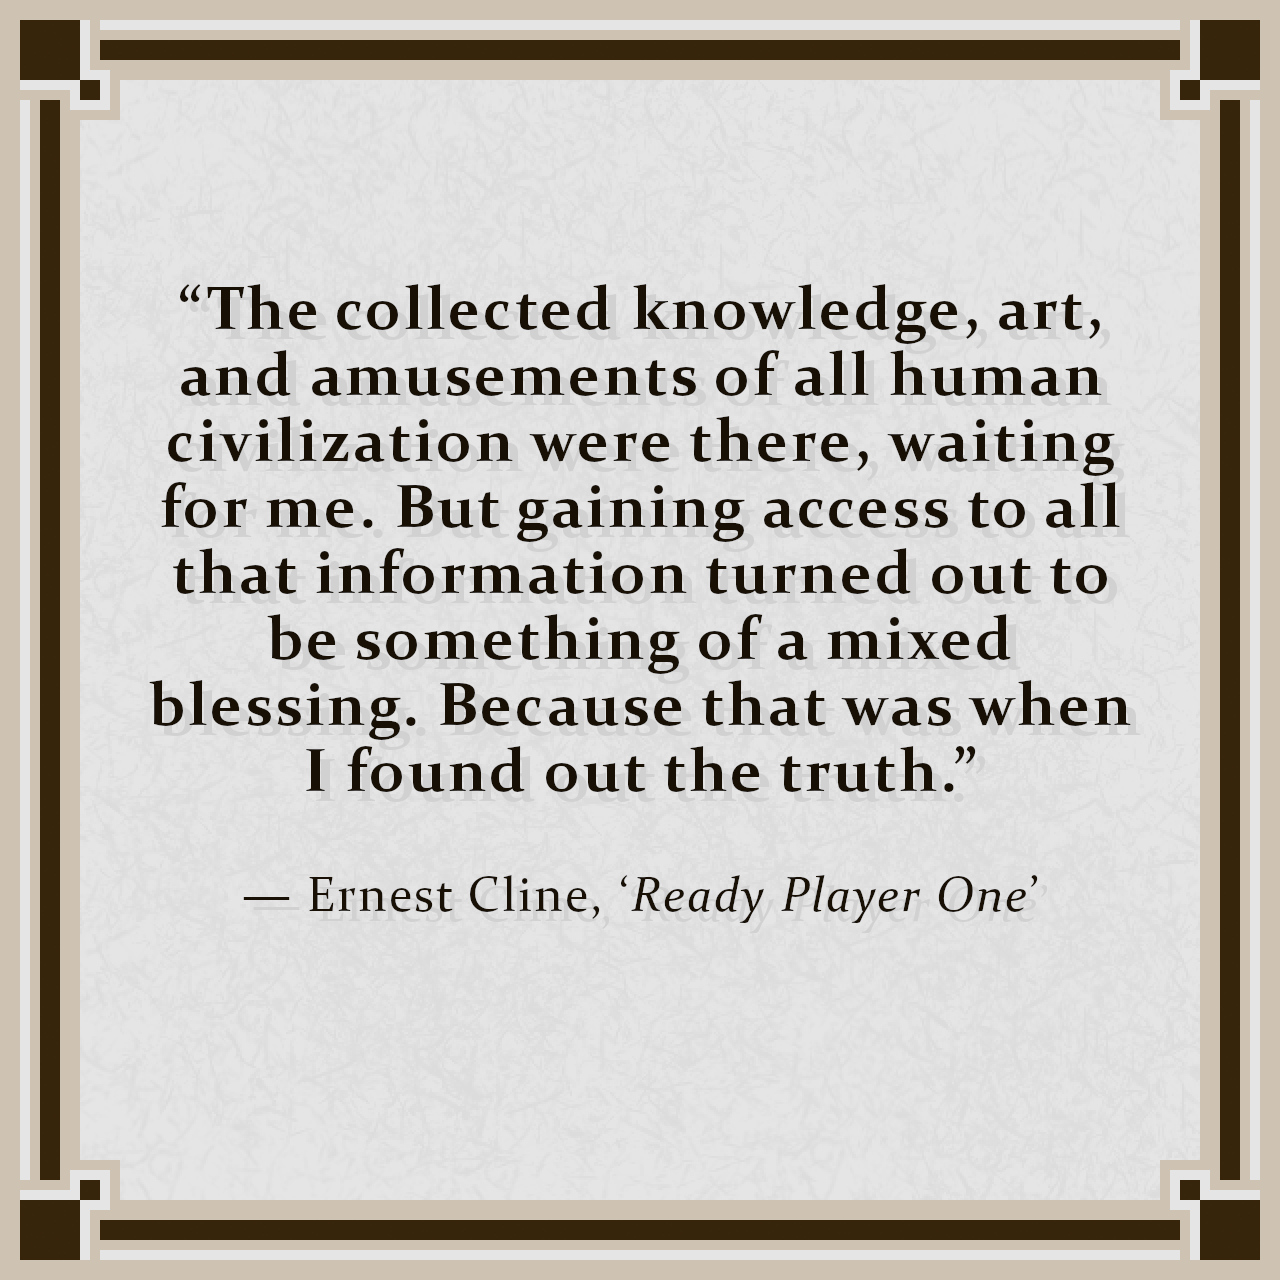 """""""The collected knowledge, art, and amusements of all human civilization were there, waiting for me. But gaining access to all that information turned out to be something of a mixed blessing. Because that was when I found out the truth."""" — Ernest Cline, 'Ready Player One'"""